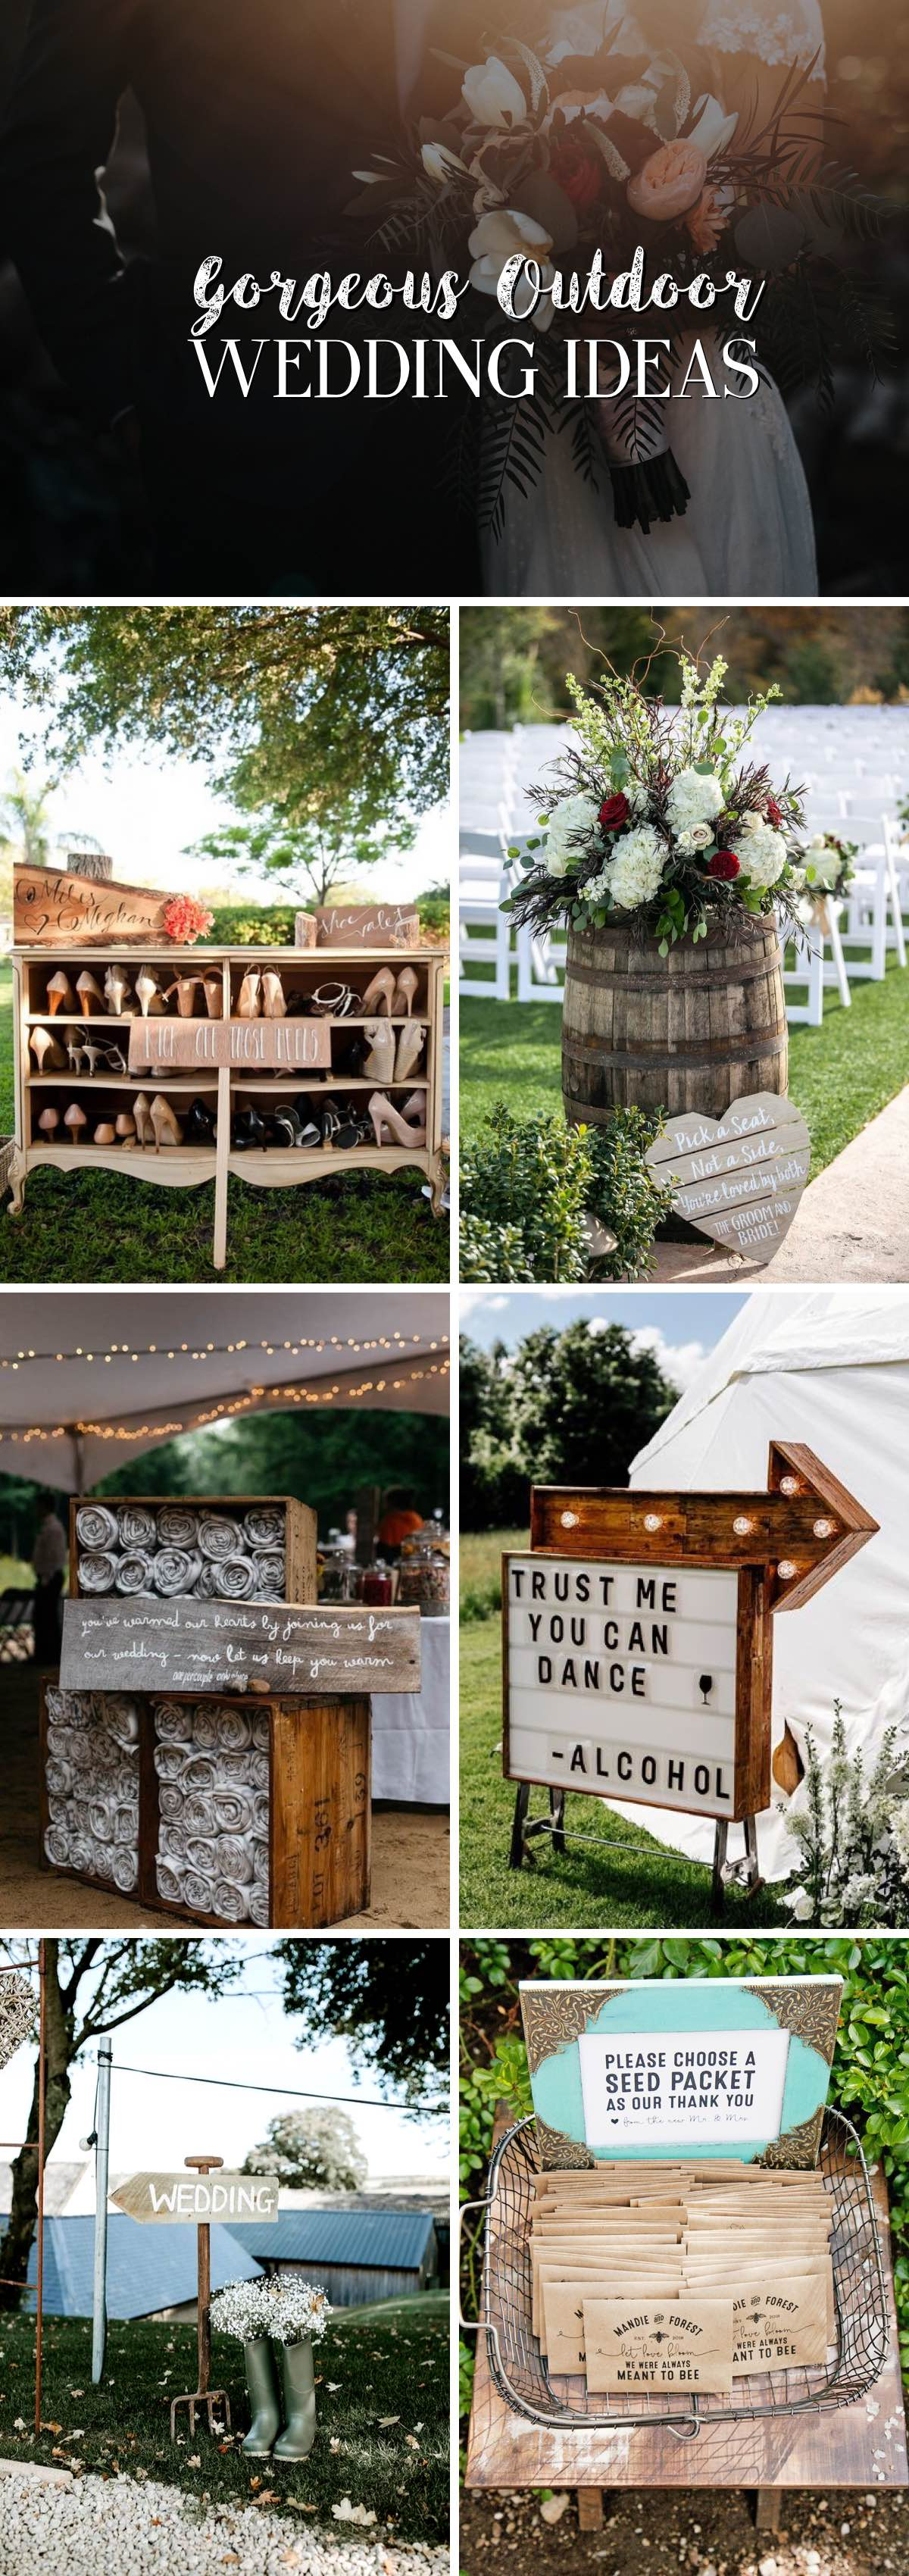 14 Gorgeous Outdoor Wedding Ideas Making Your Big Day Even More Special!